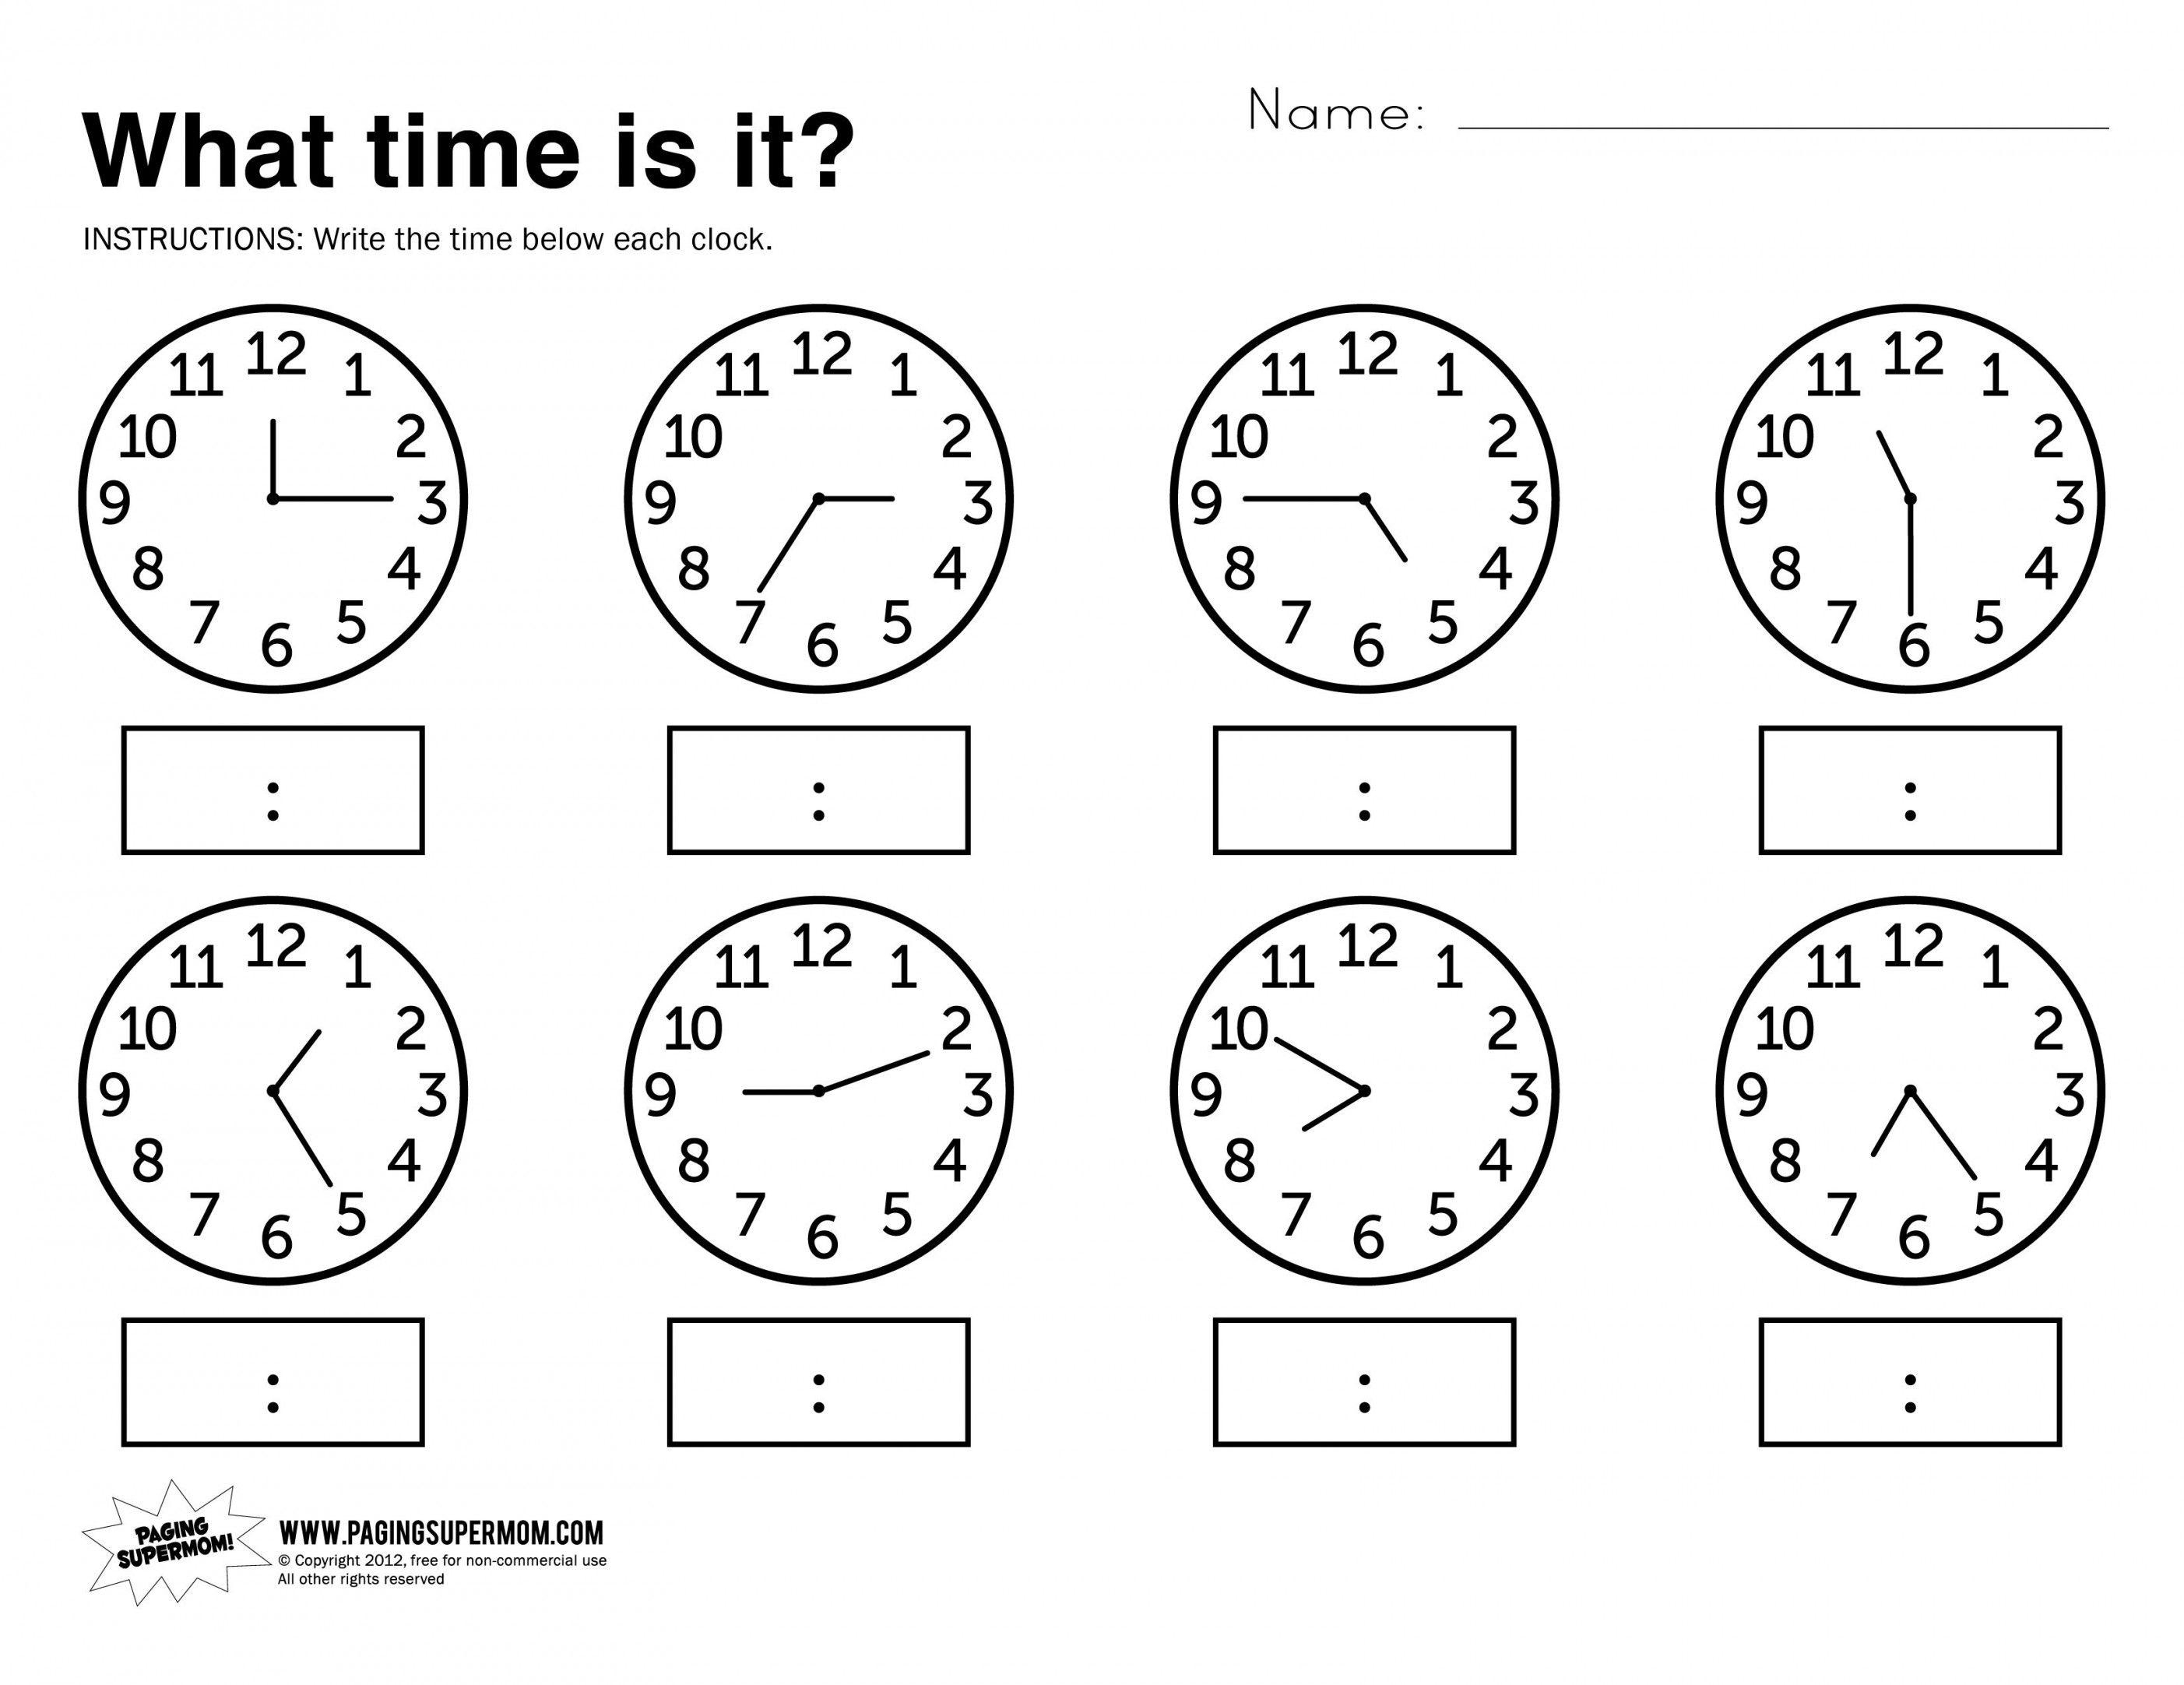 Telling Time Worksheets Grade 3 | Lostranquillos - Free Printable | Printable Time Worksheets Grade 3